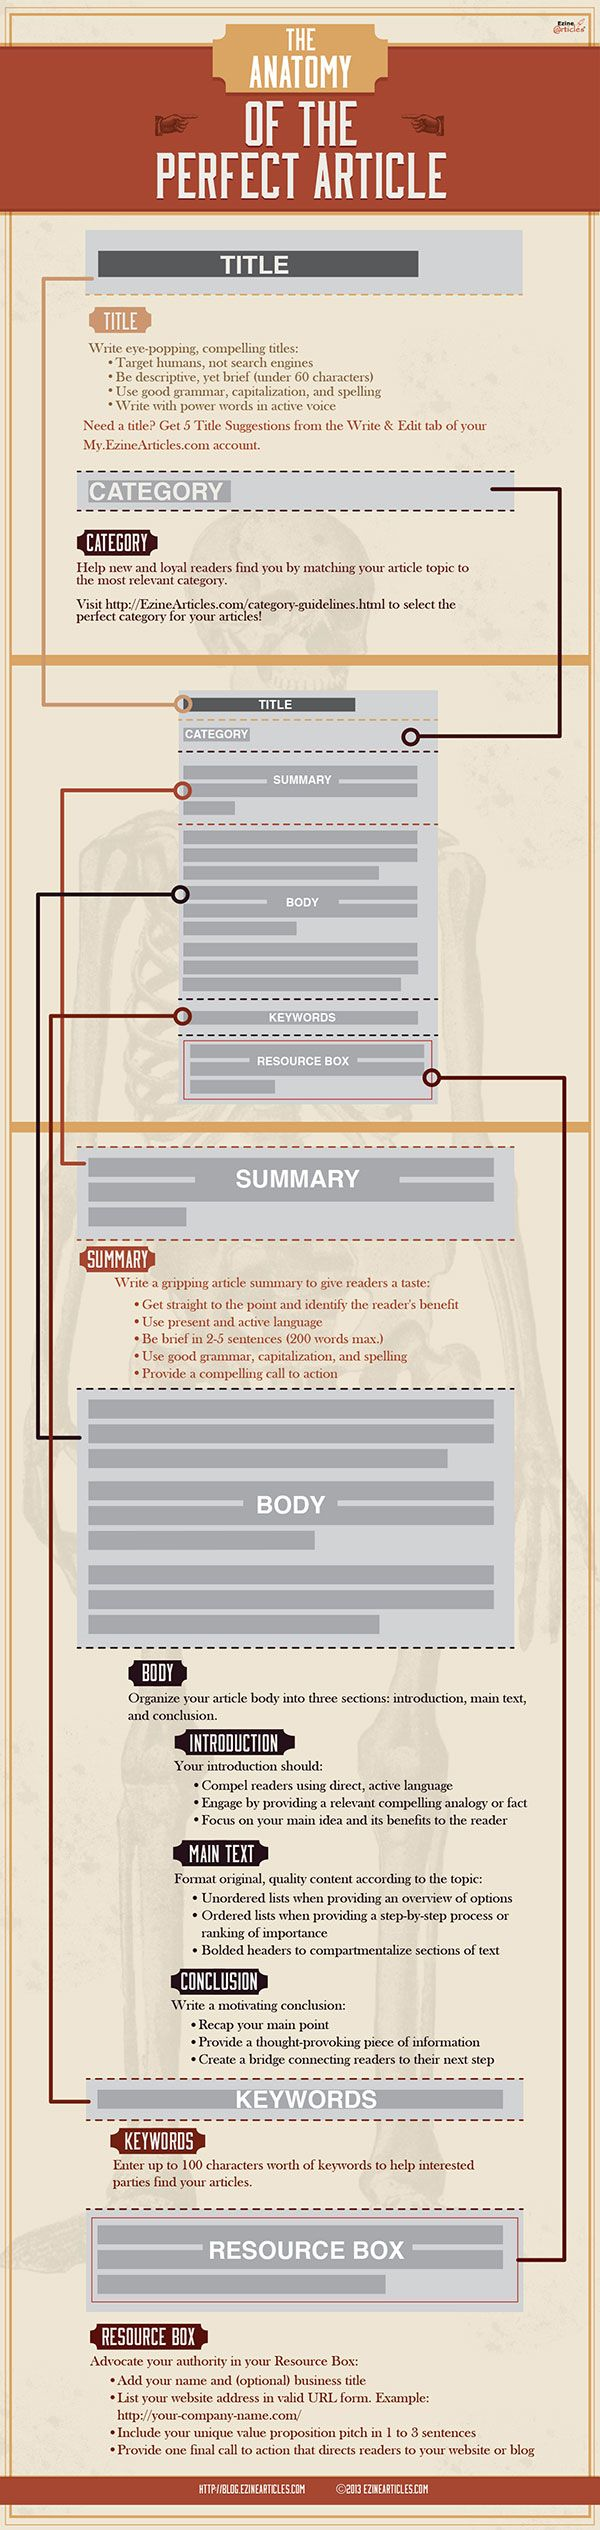 The Anatomy Of The Perfect Article Infographic Infographic